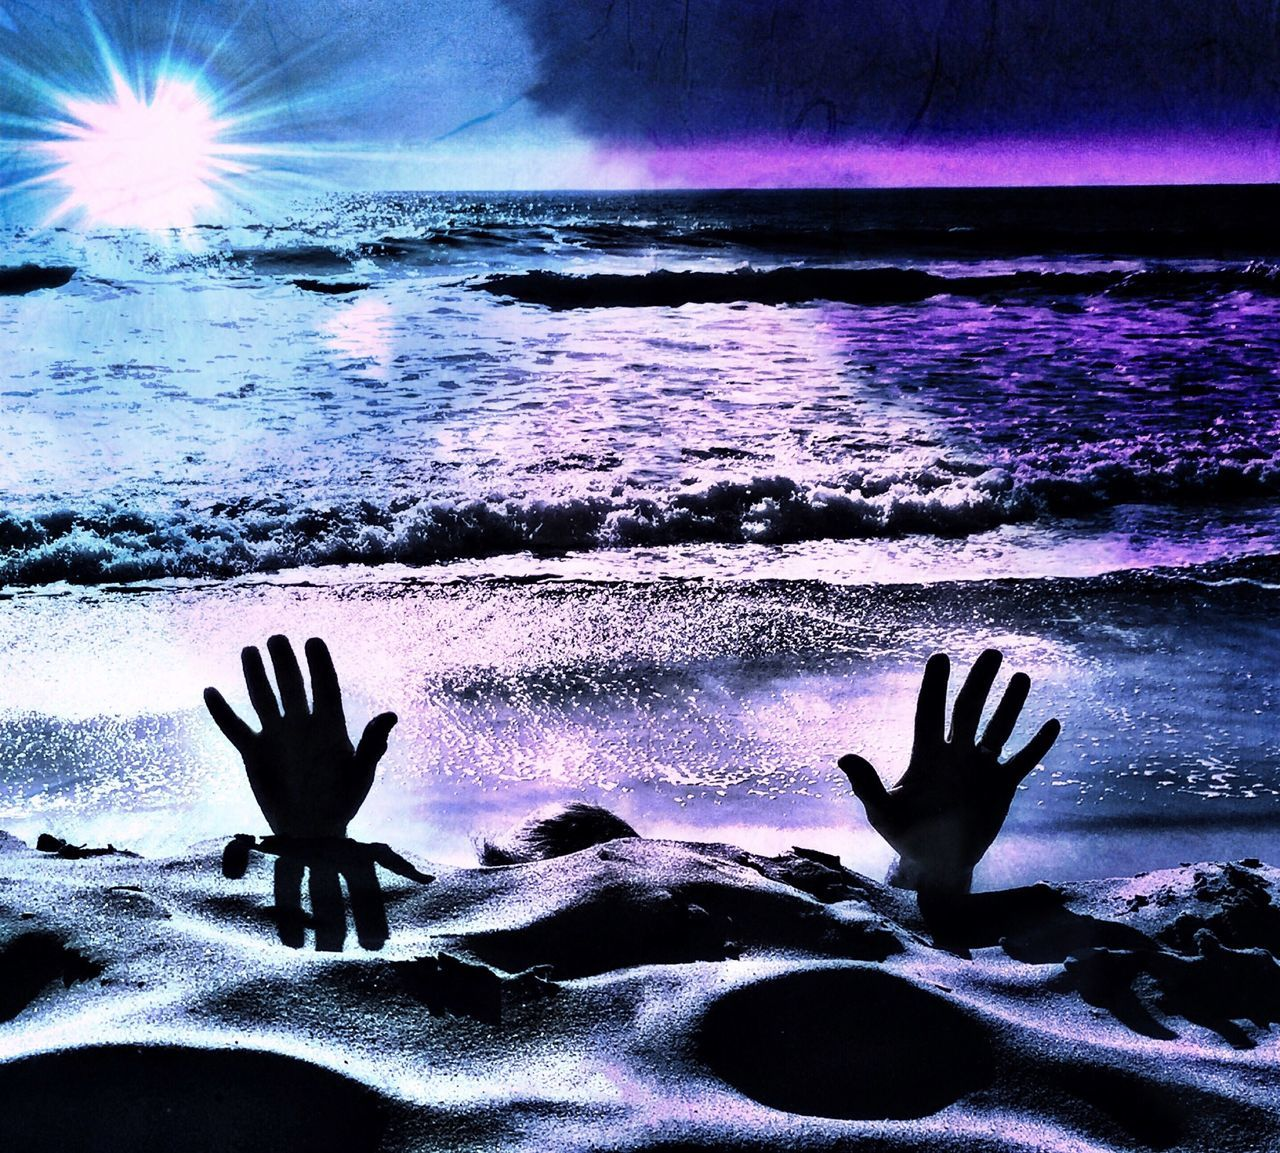 Blue Cold Cold Temperature Concept Concepts Conceptual Danger Debt Distressed Drown Drowning Drowning In Debt Hands Help Help Me Man Ocean Person Purple Save Me Sea Surreal The Magic Mission Unrecognizable Person Water